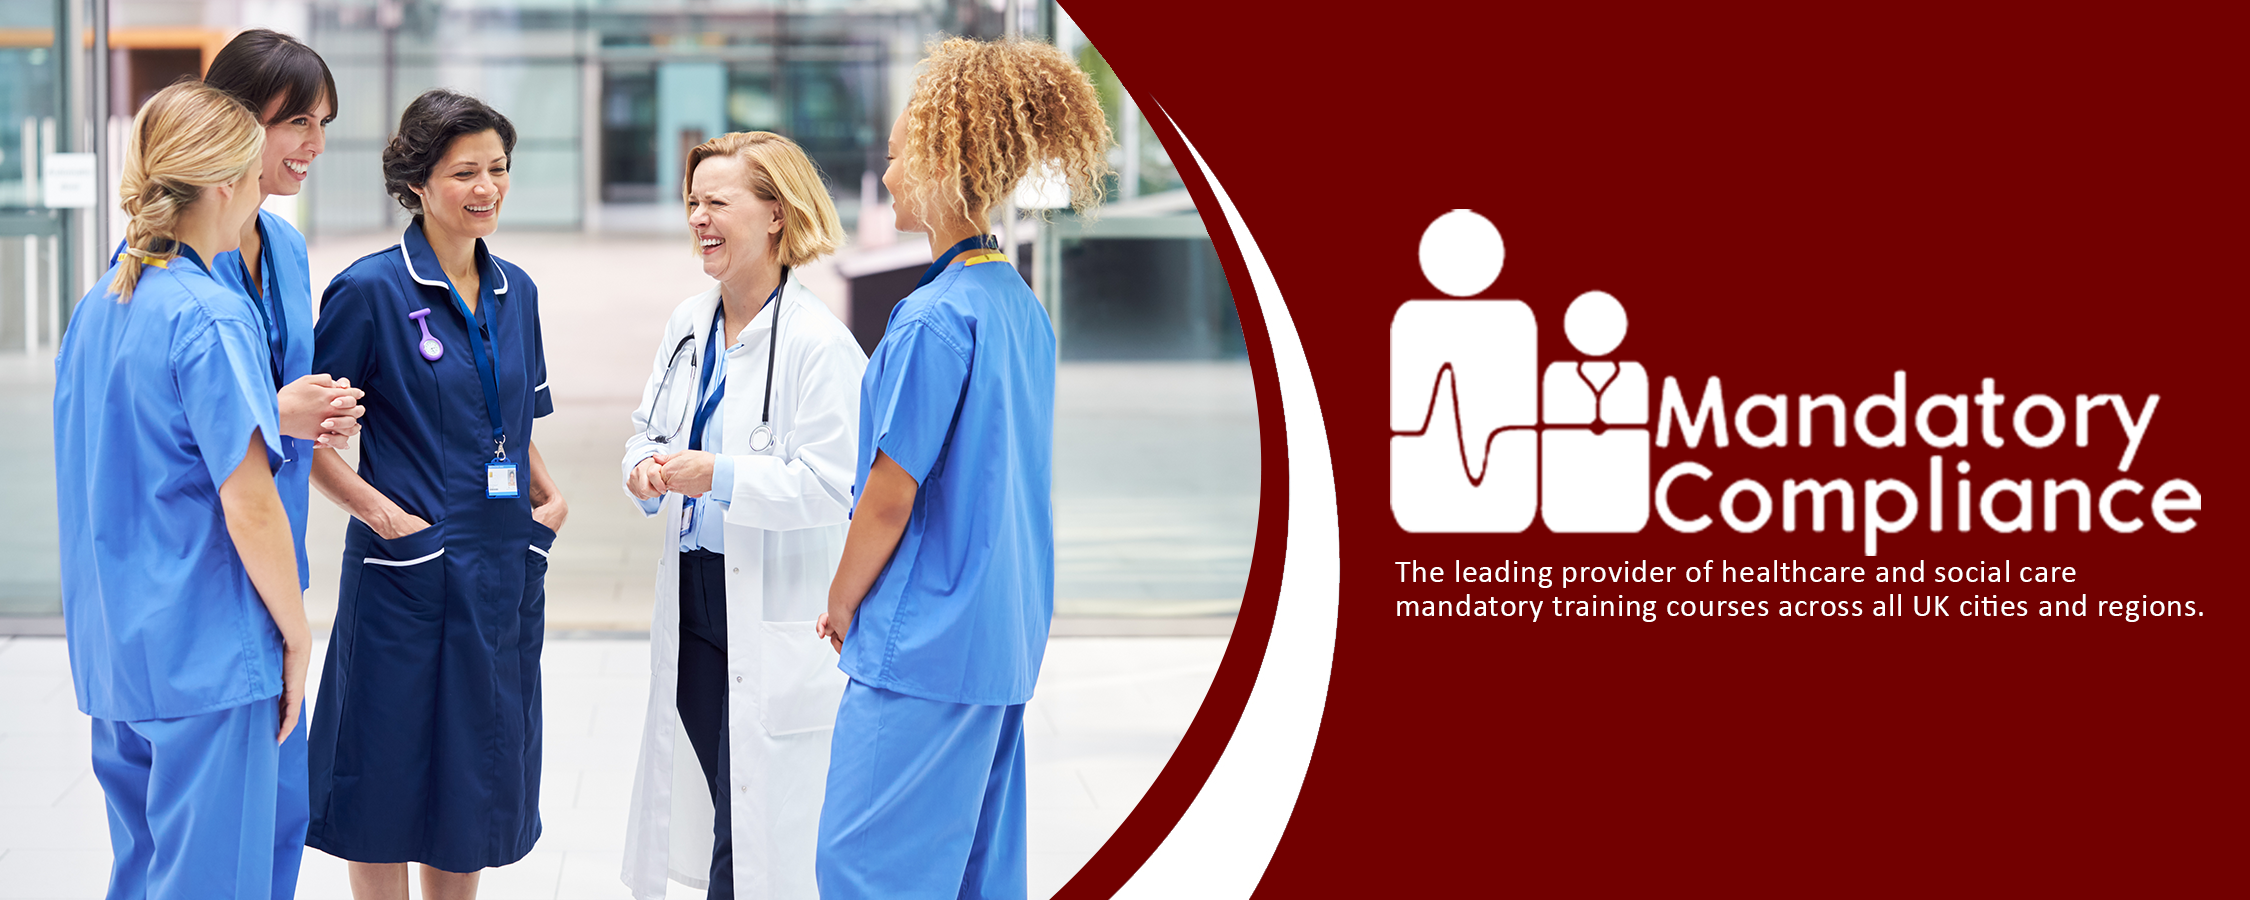 Mandatory Training Courses for Nurses and NHS Health Care Staff - Online Training Course - CPD Accredited -